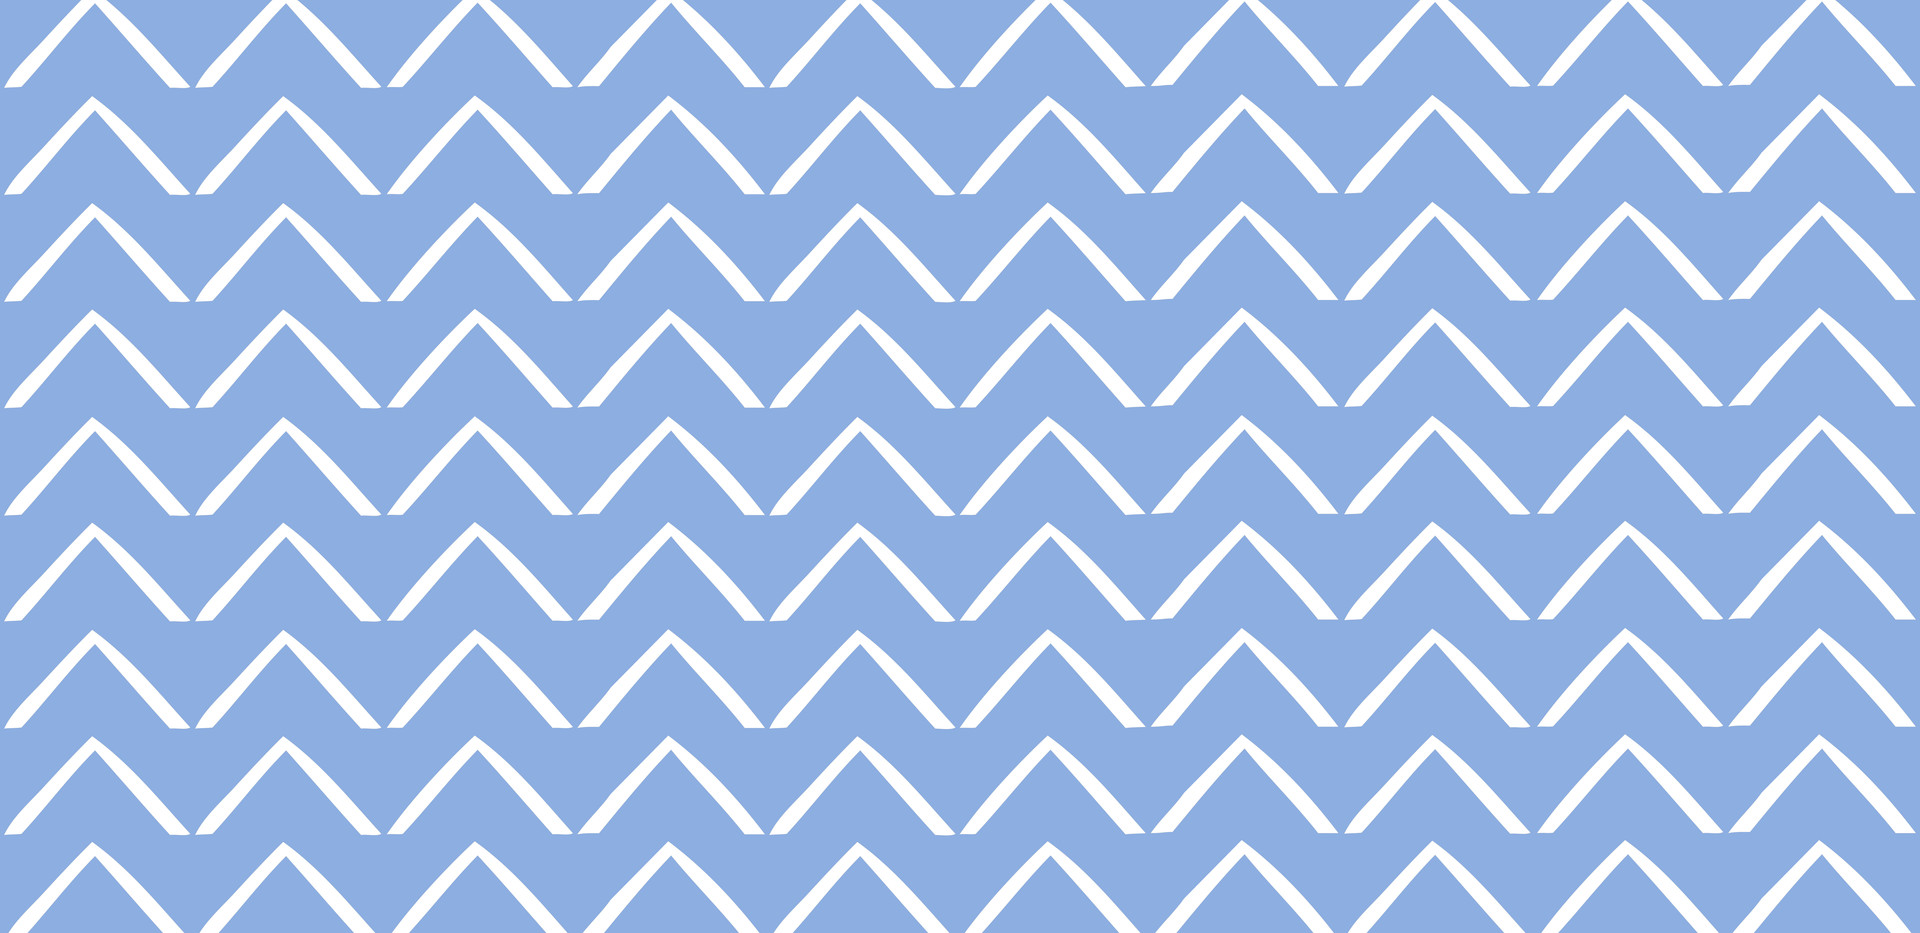 ZigZag Arrows . Perfect Blue